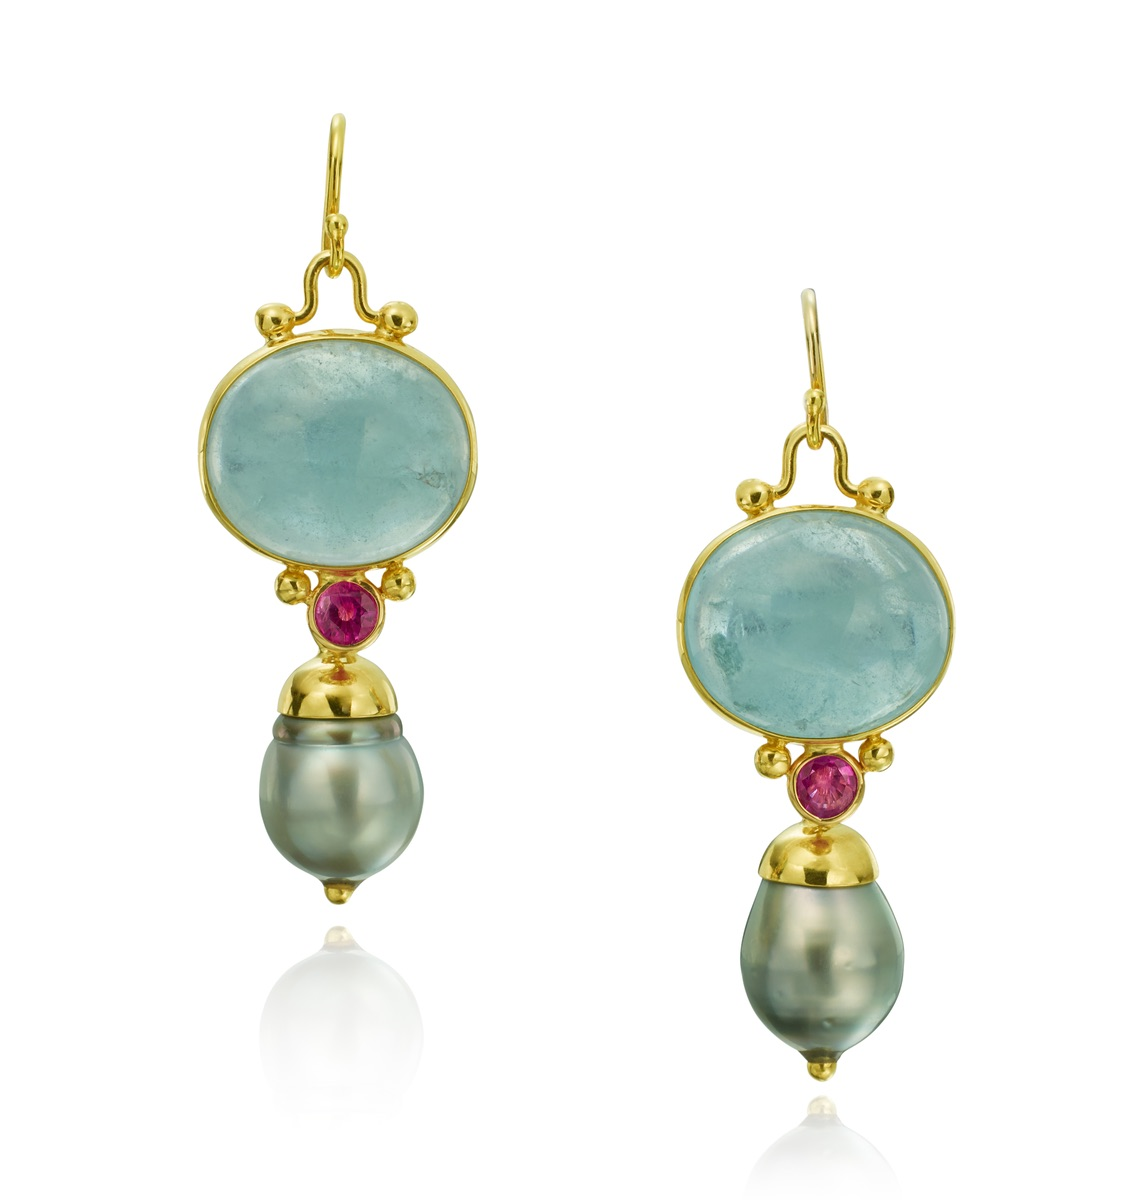 The Jewel - Mazza - Lookbook - Green/Blue, Pink and Gold Drop Earrings